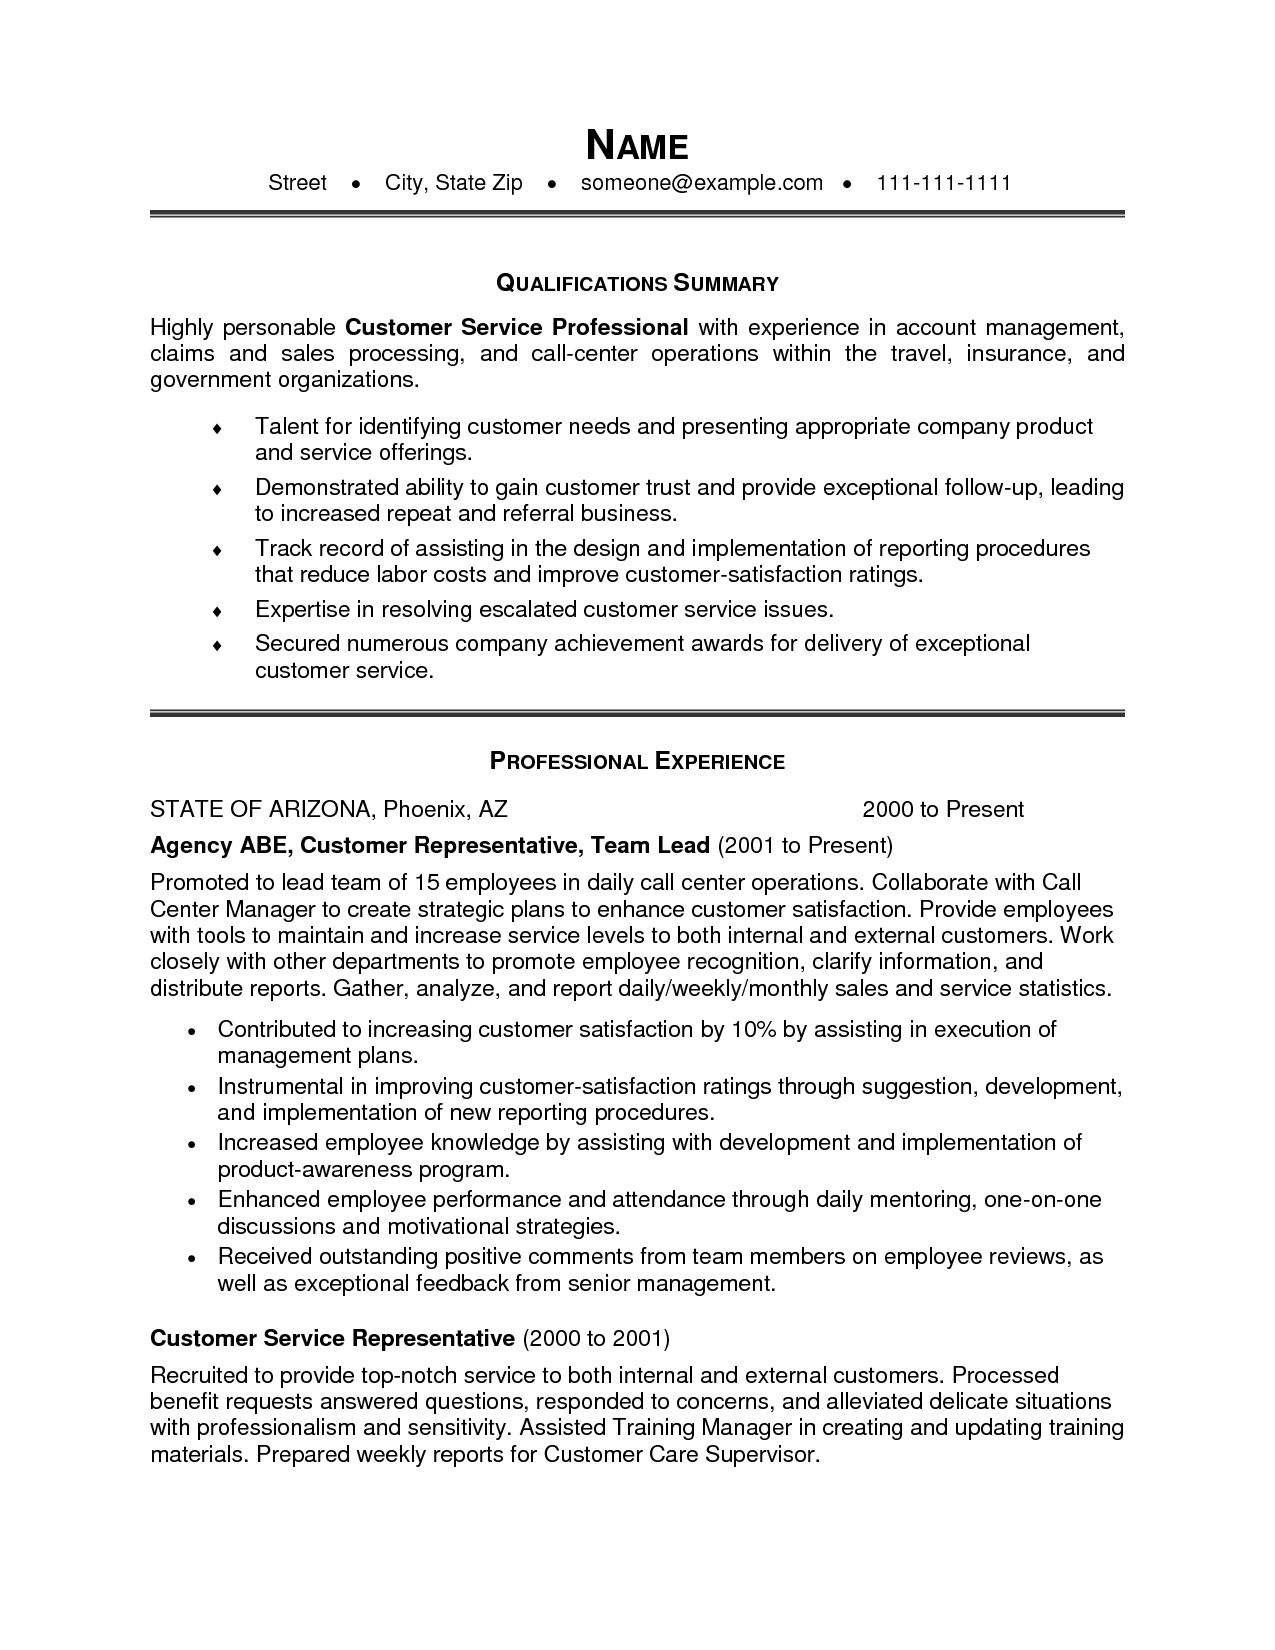 customer service resume objective or summary statement for example sample college Resume Customer Service Objective Statement For Resume Example